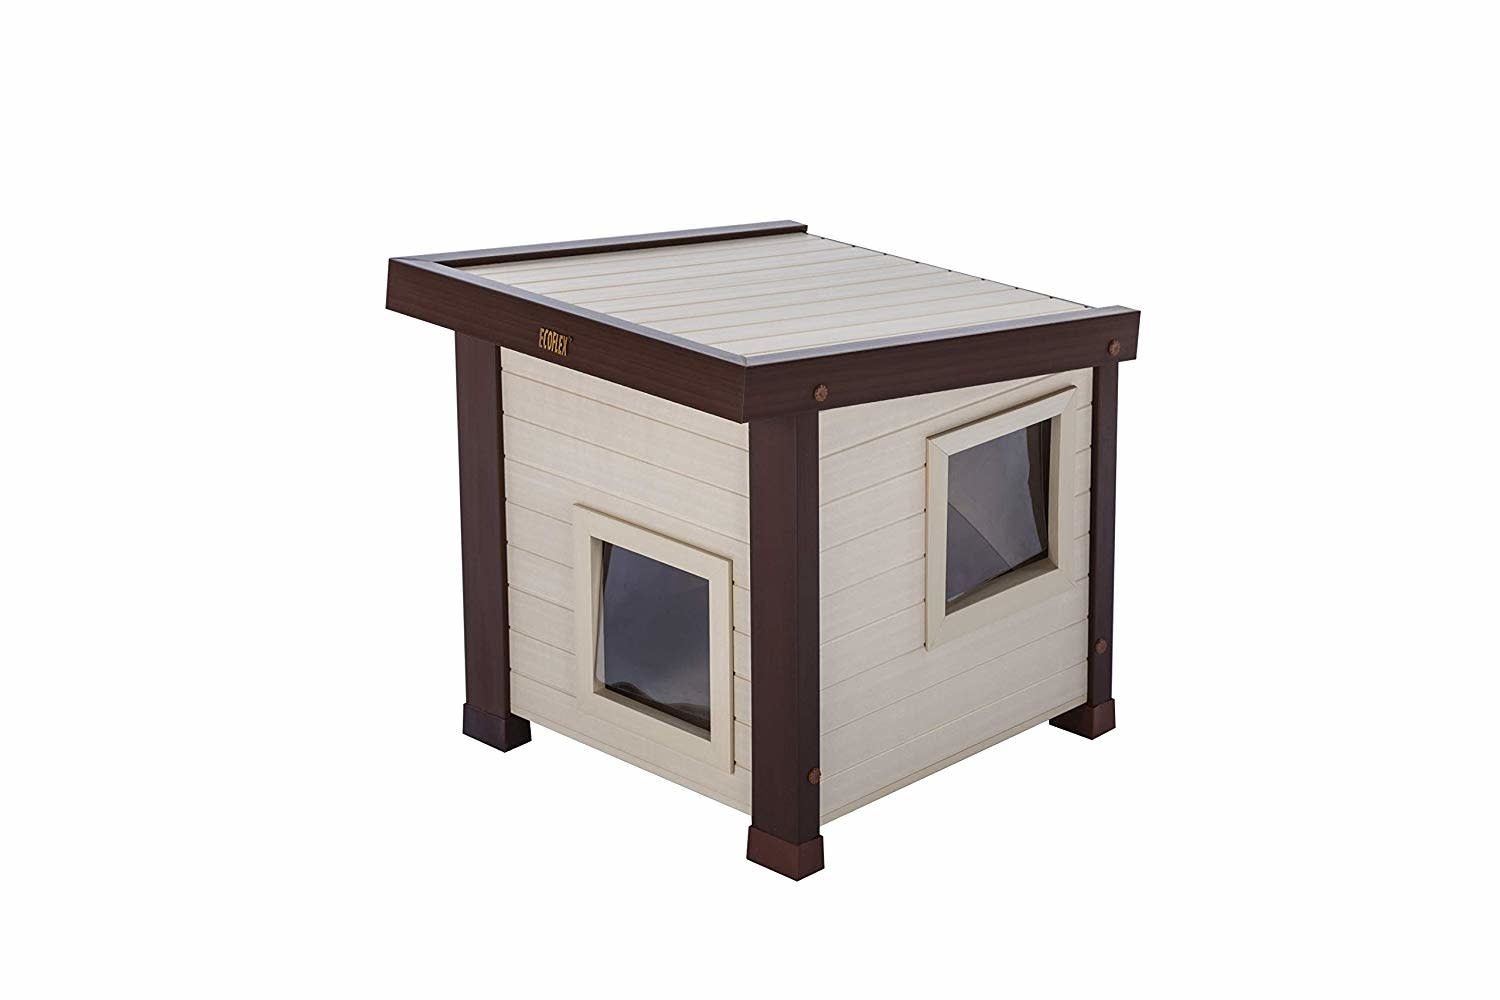 New Age Pet New Age Pet® Albany Feral Cat Shelter